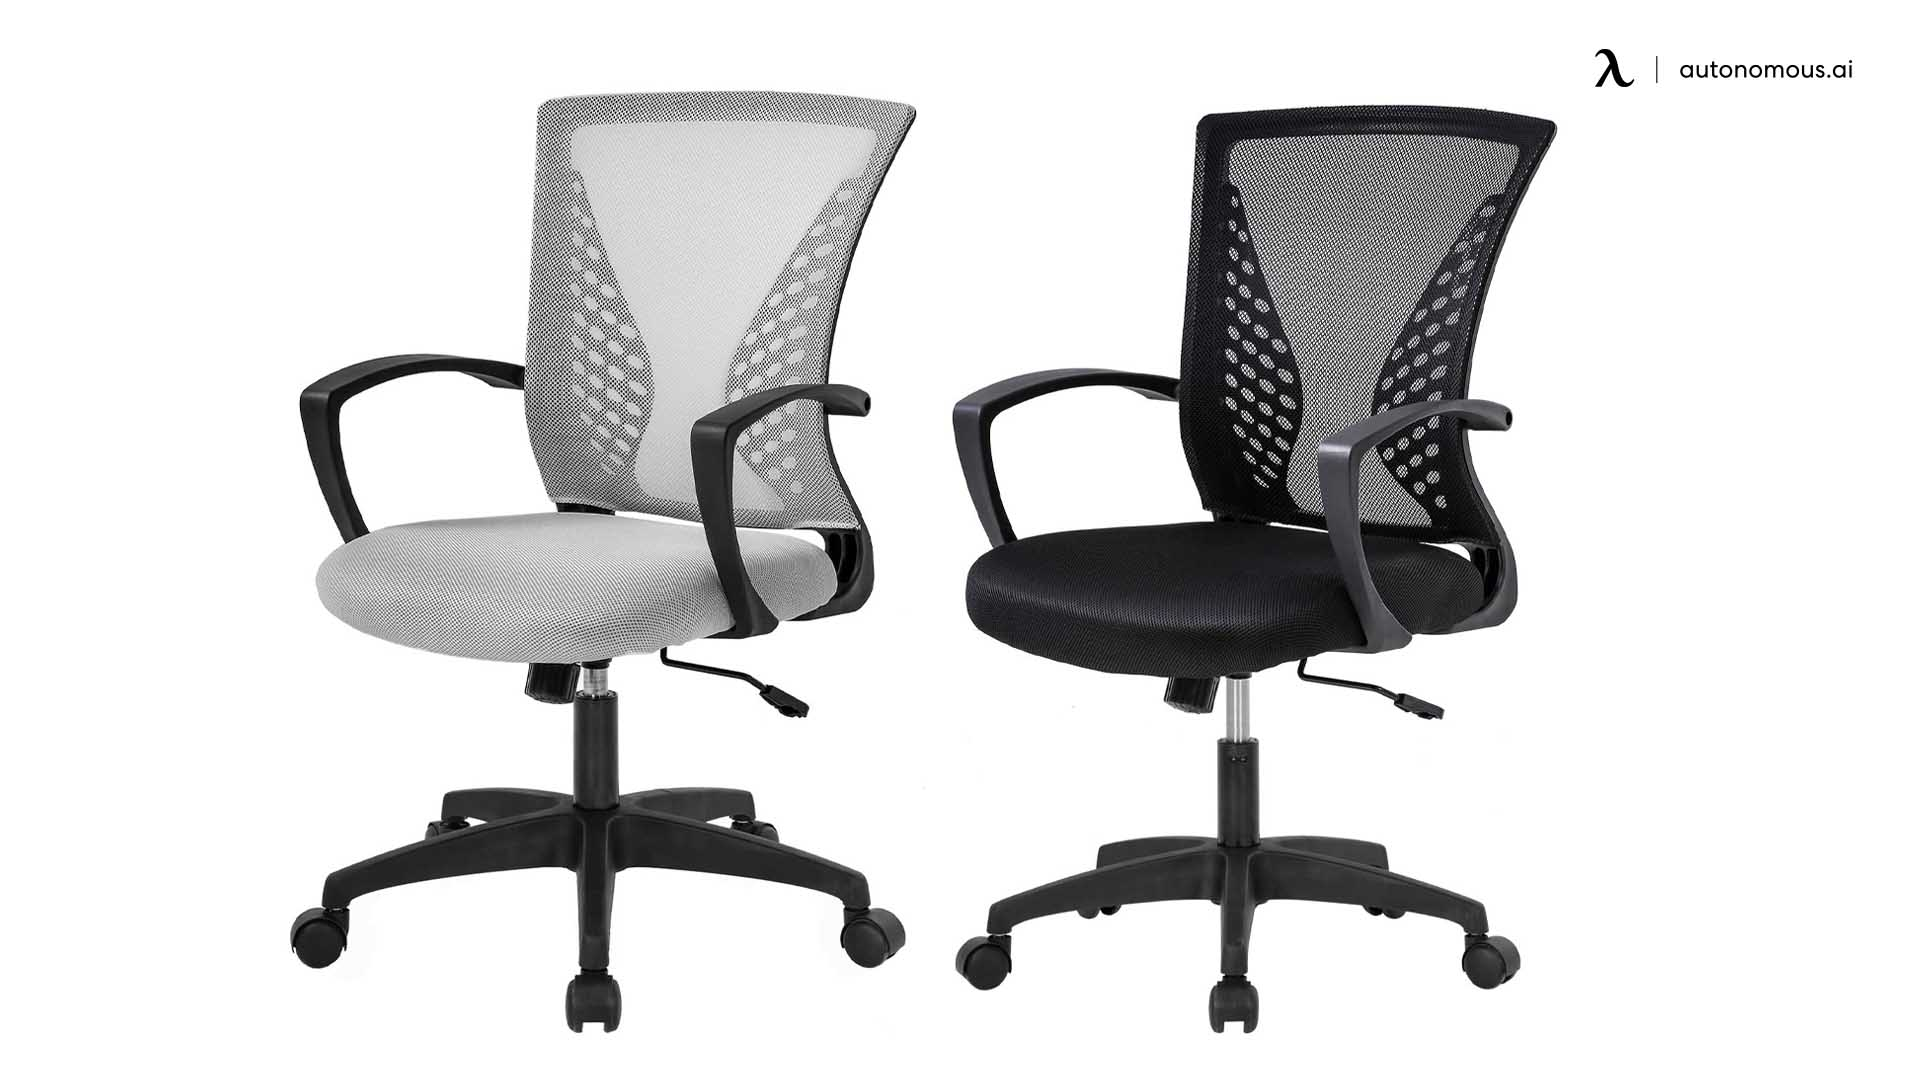 The FDW Office Chair